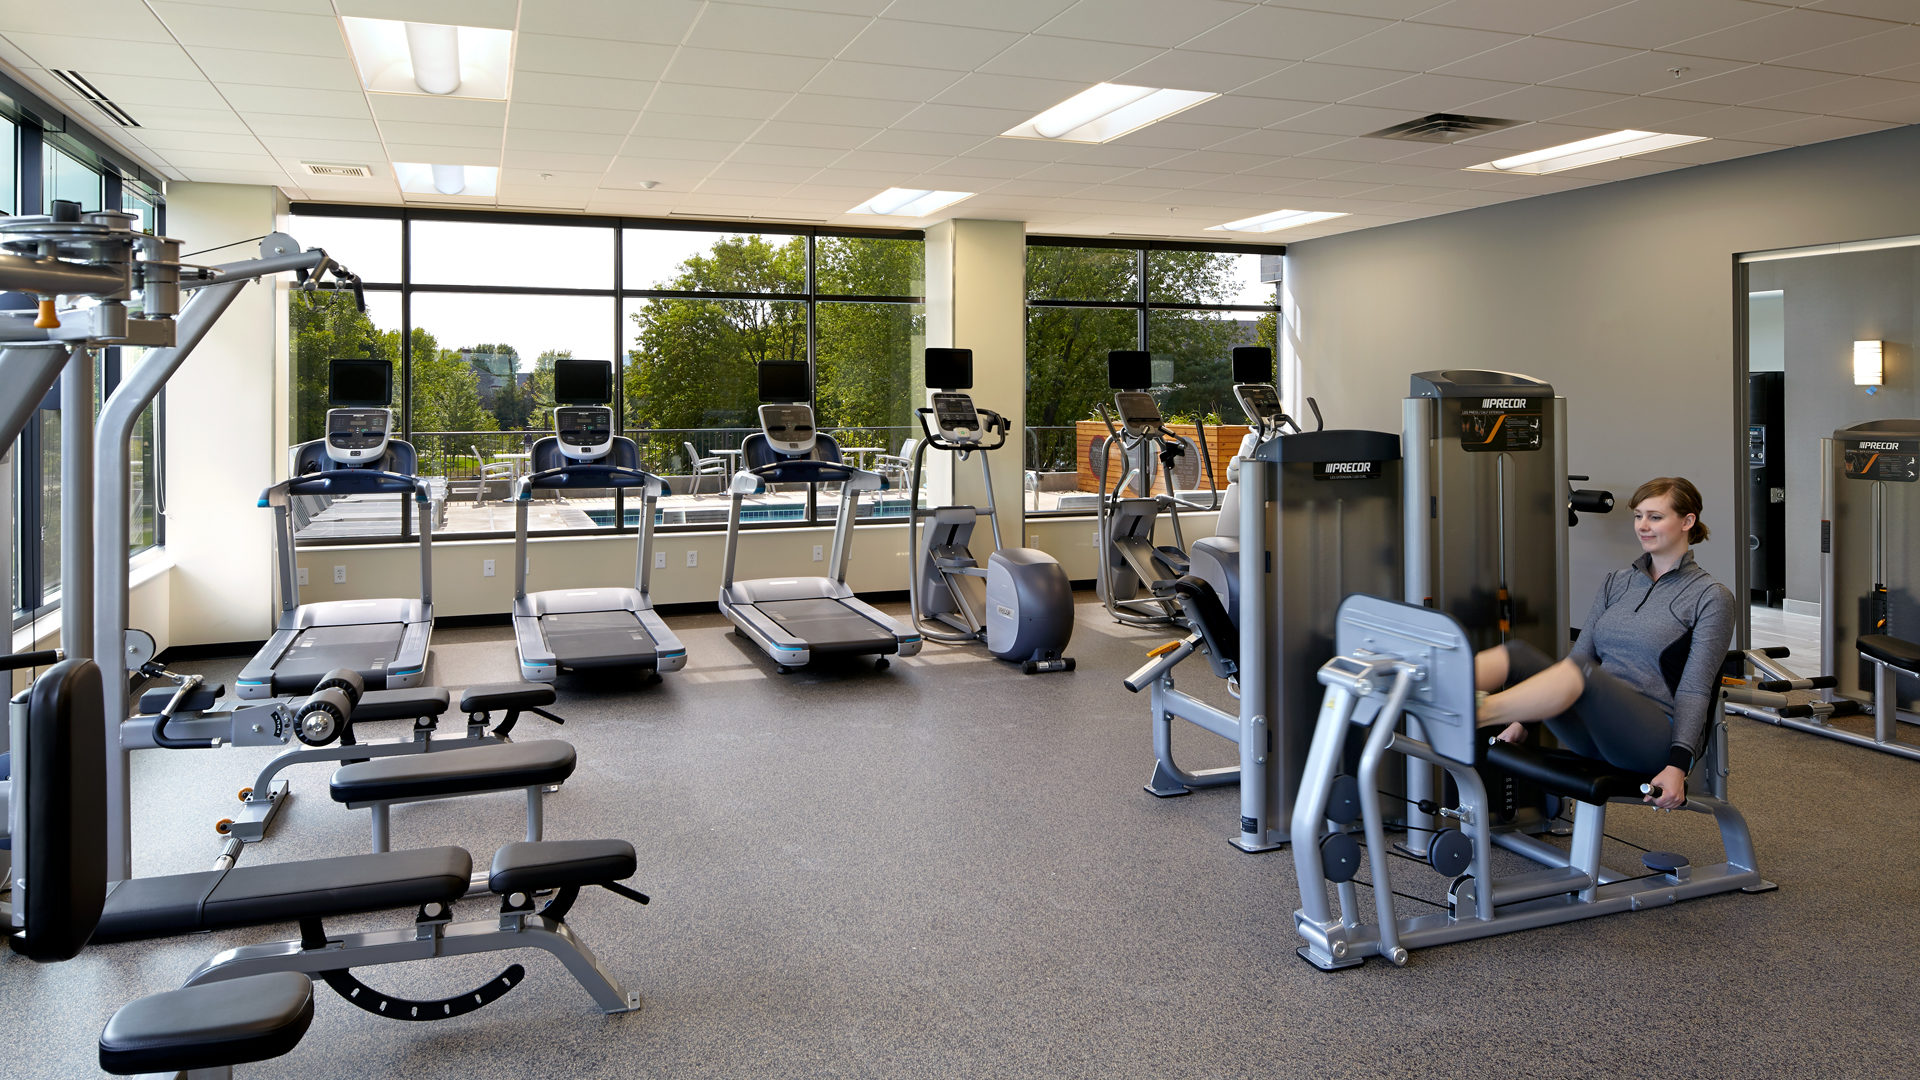 71 France Apartments Interior Fitness Center